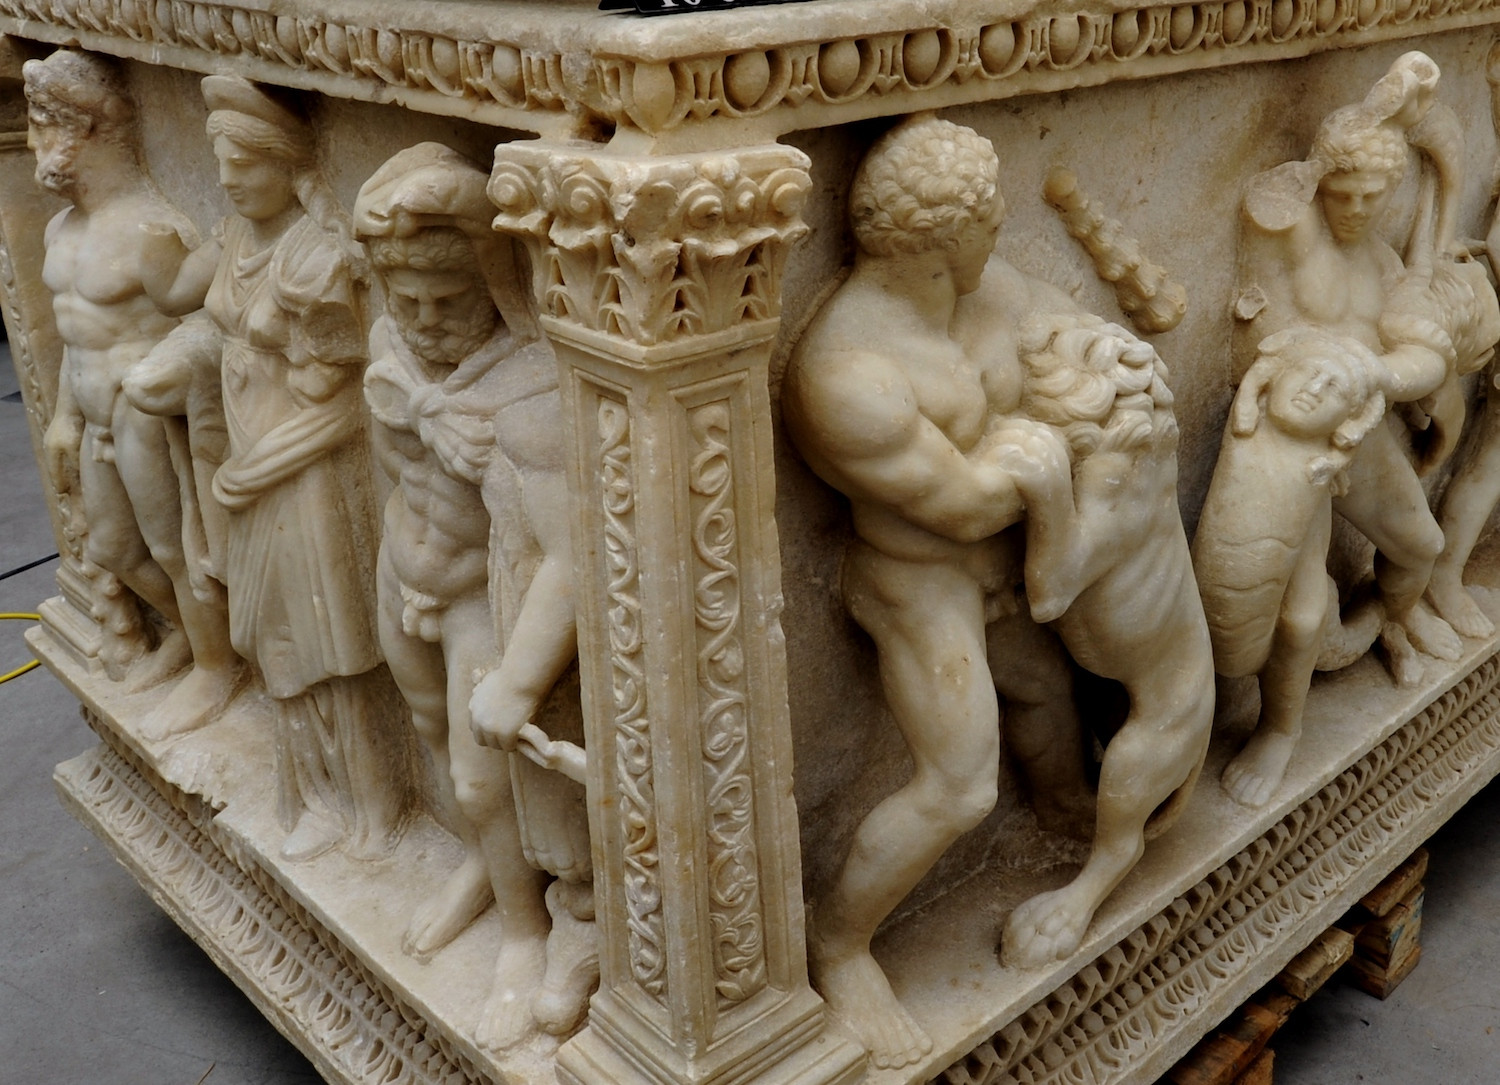 How did the Perge Hercules Sarcophagus find its way back to Turkey?